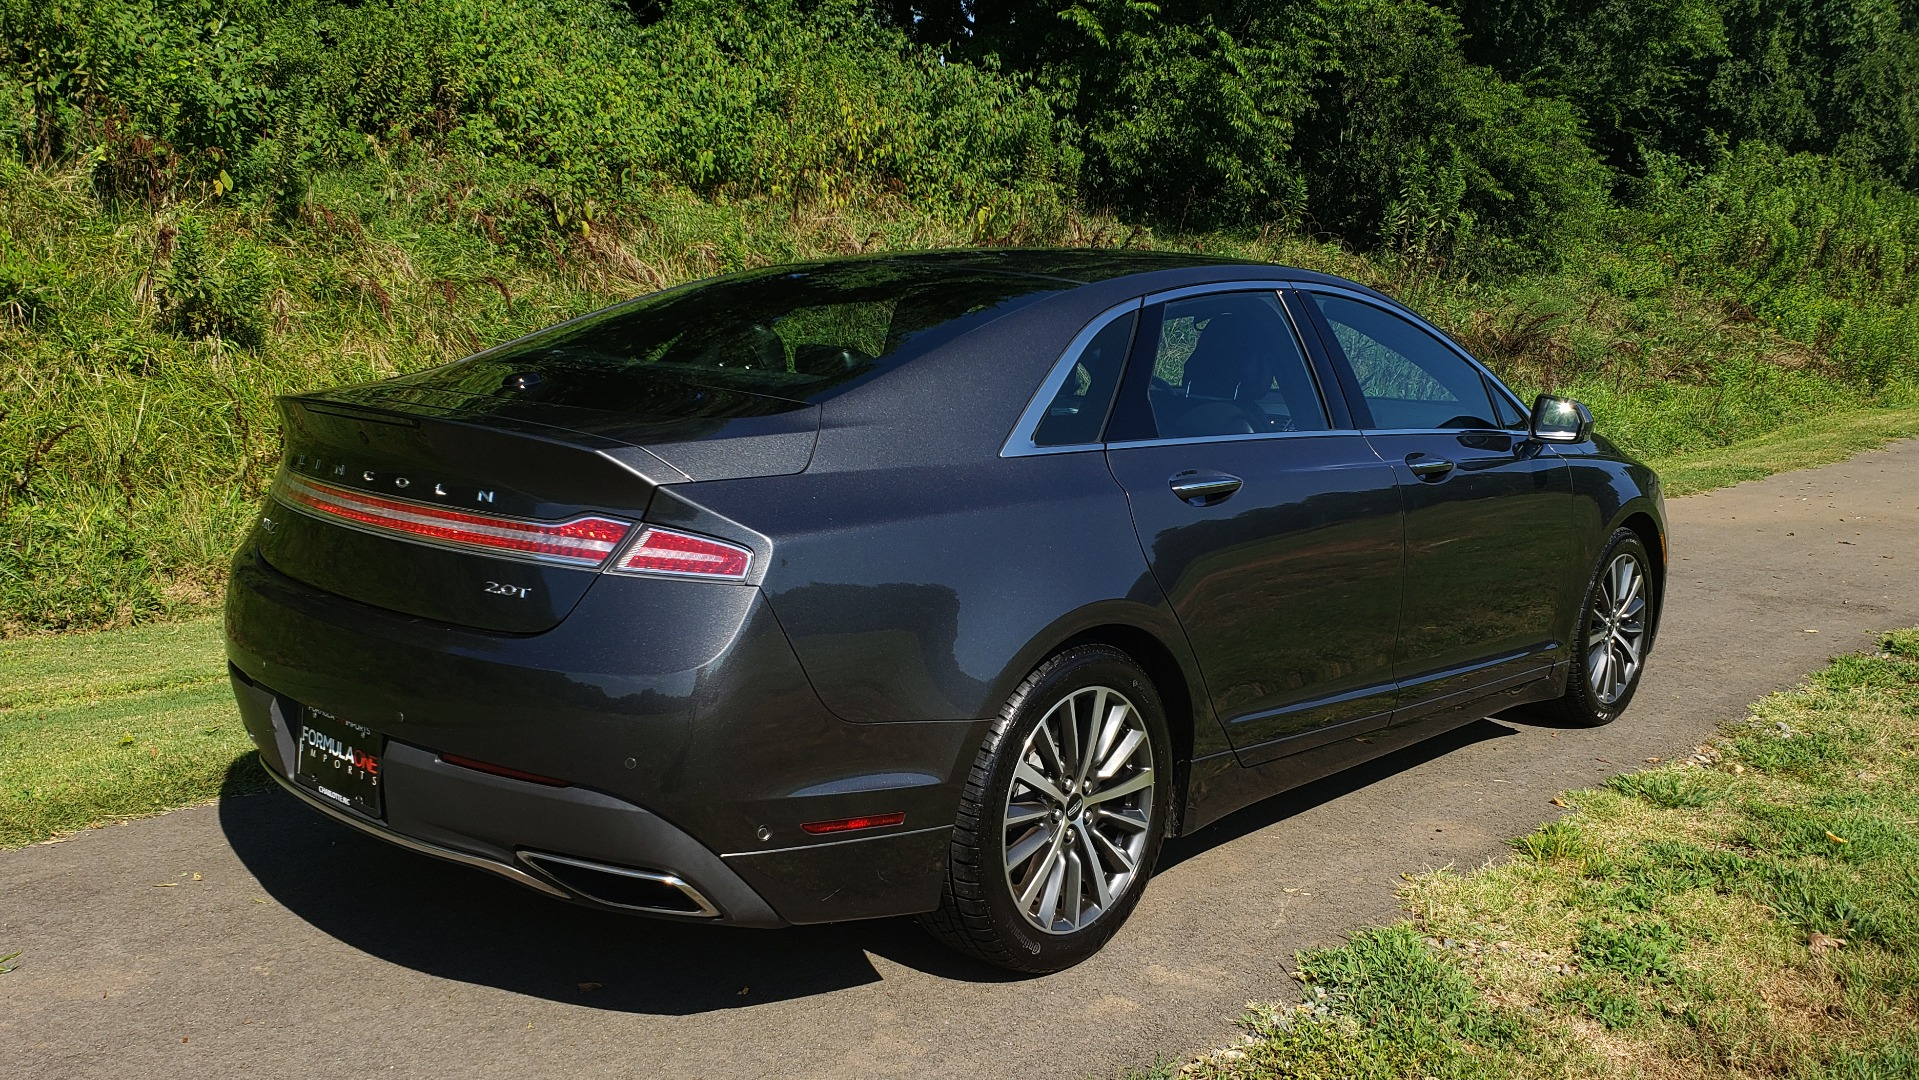 Used 2017 Lincoln MKZ SELECT PLUS / FWD / 2.0L 4-CYL / TECH / NAV / SNRF / REARVIEW for sale Sold at Formula Imports in Charlotte NC 28227 6